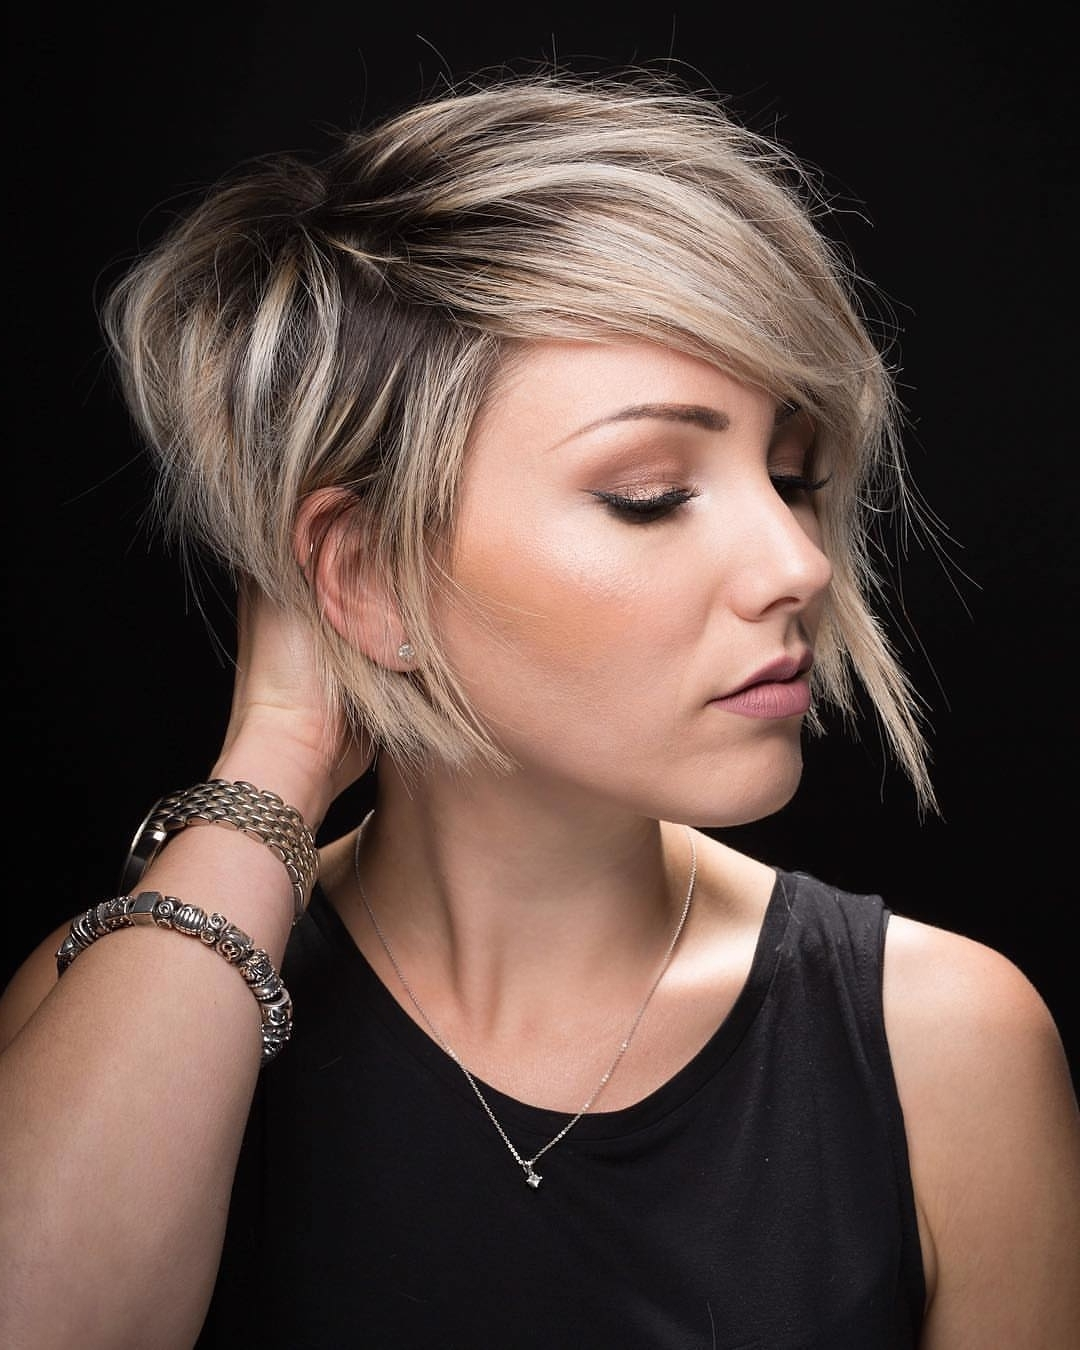 2018 Shaggy Girl Hairstyles With Regard To Short Hairstyles : 20 Amazing Short And Shaggy Hairstyles Idea At (View 1 of 15)